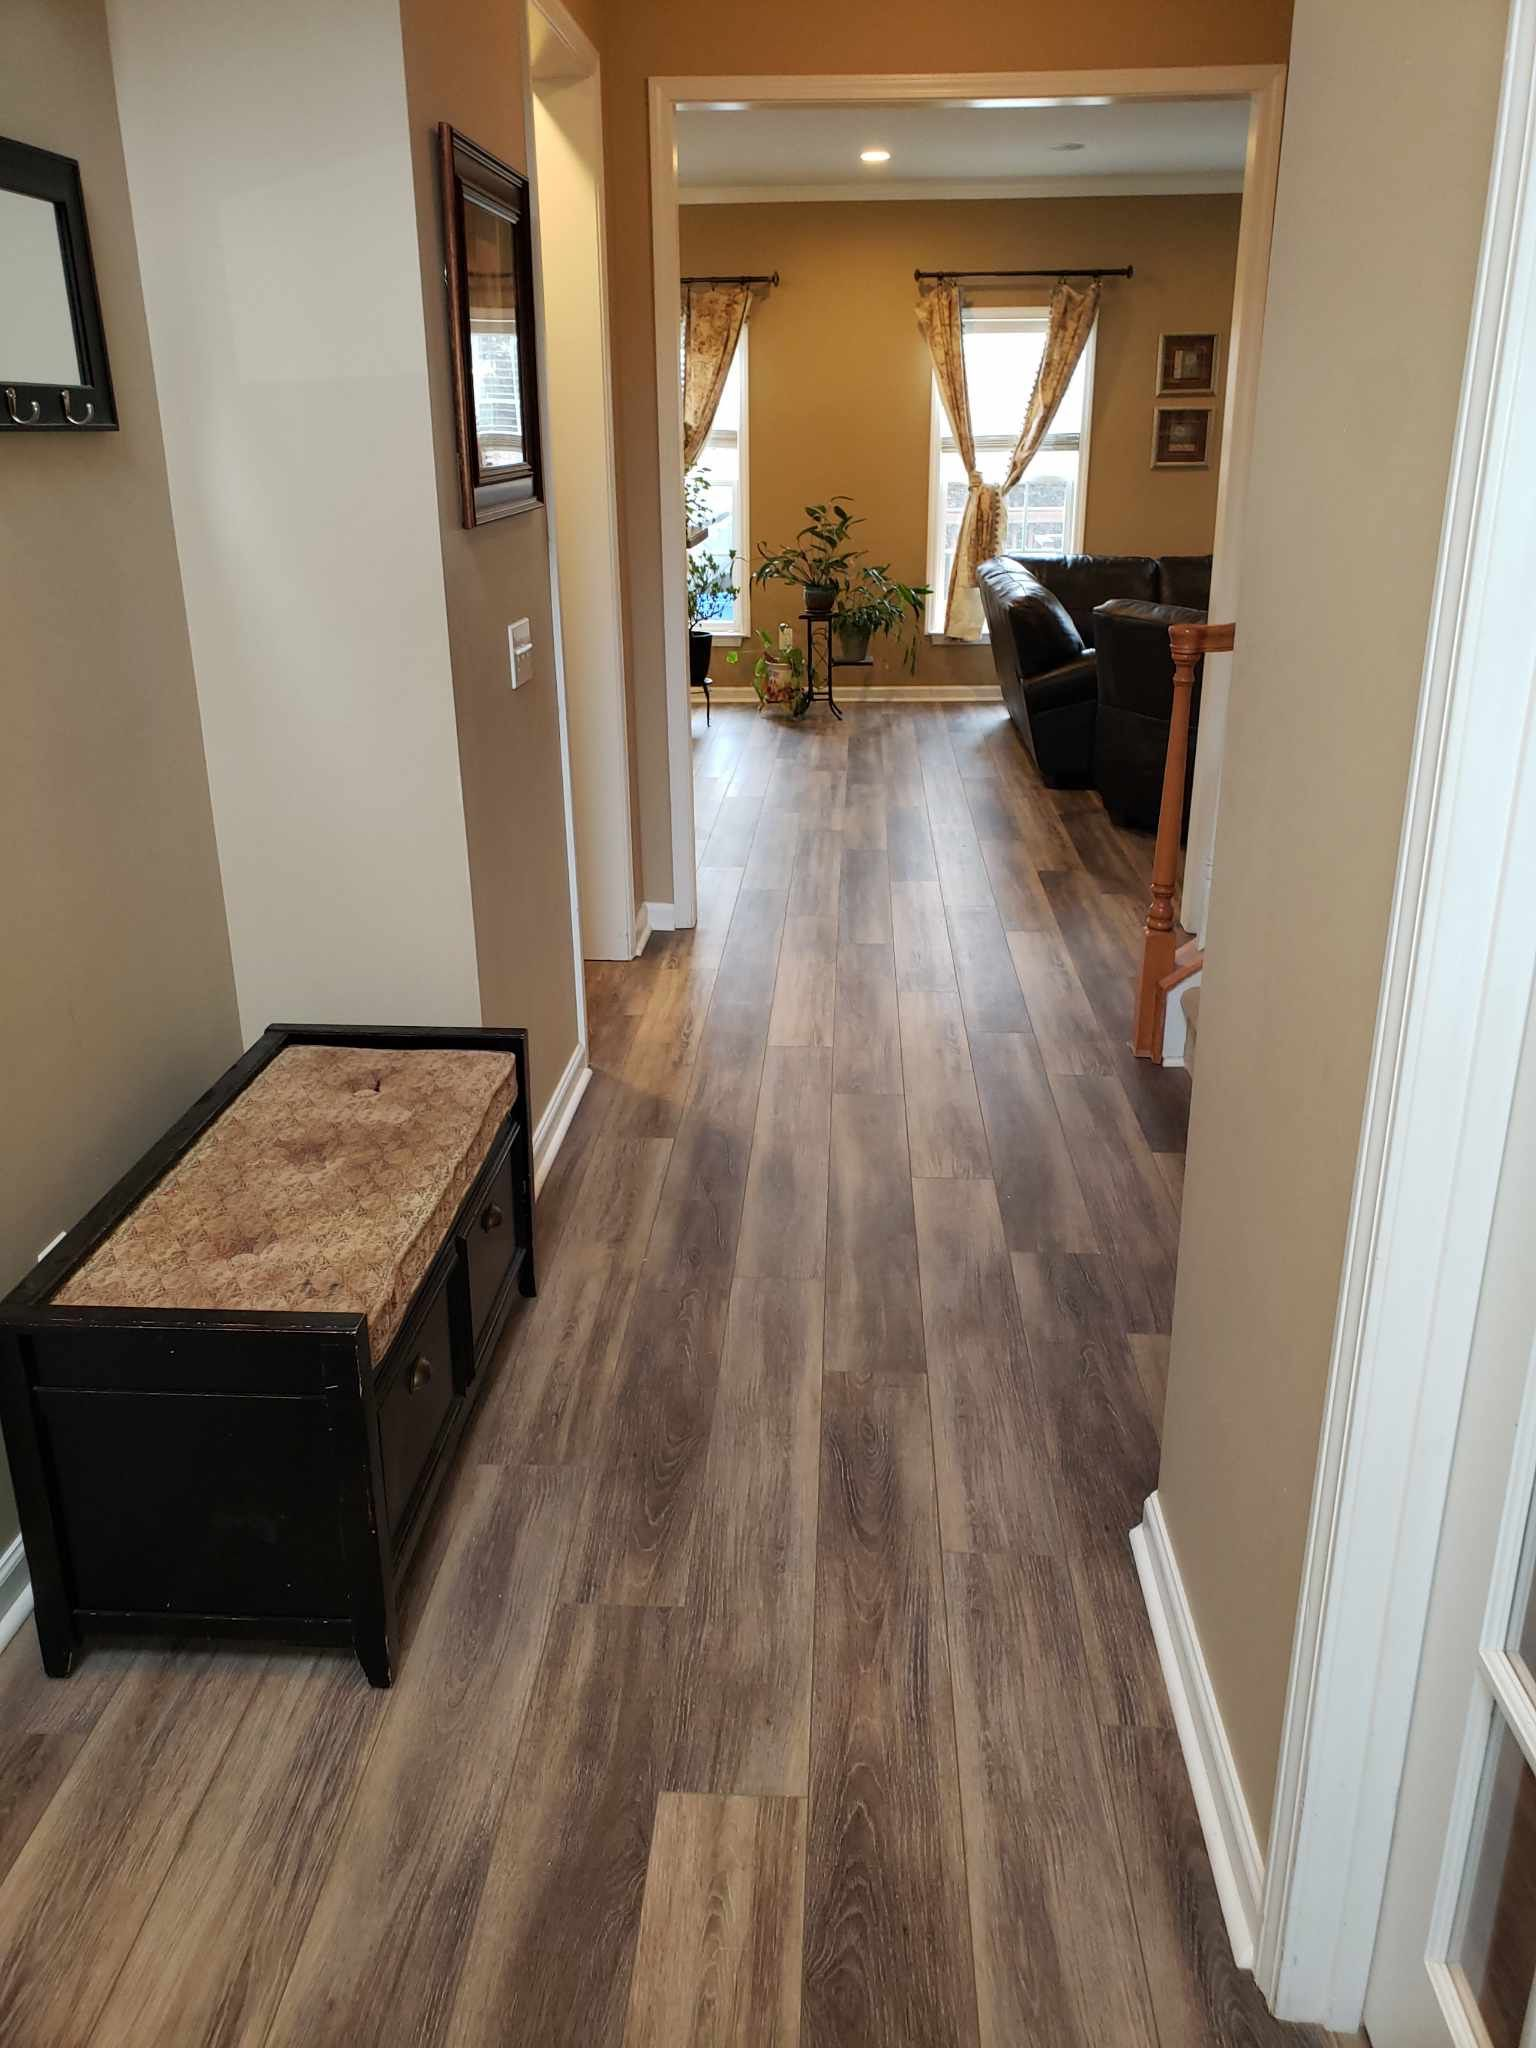 Luxury Vinyl Plank (LVP) installation completed by Flowers